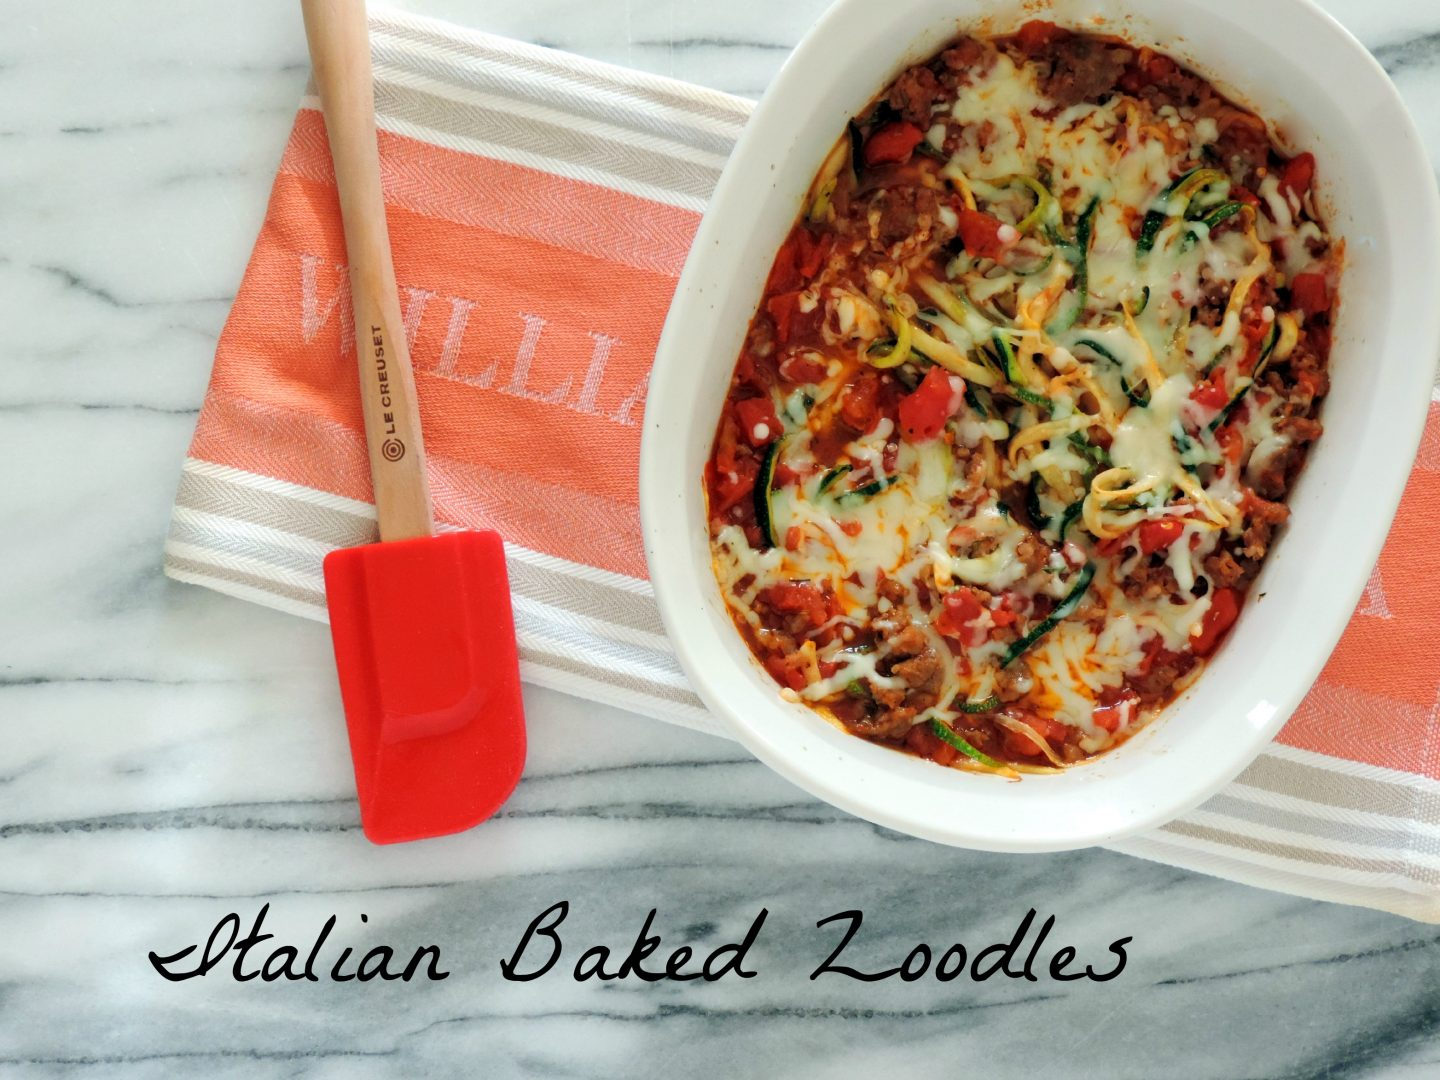 Italian Baked Zoodles